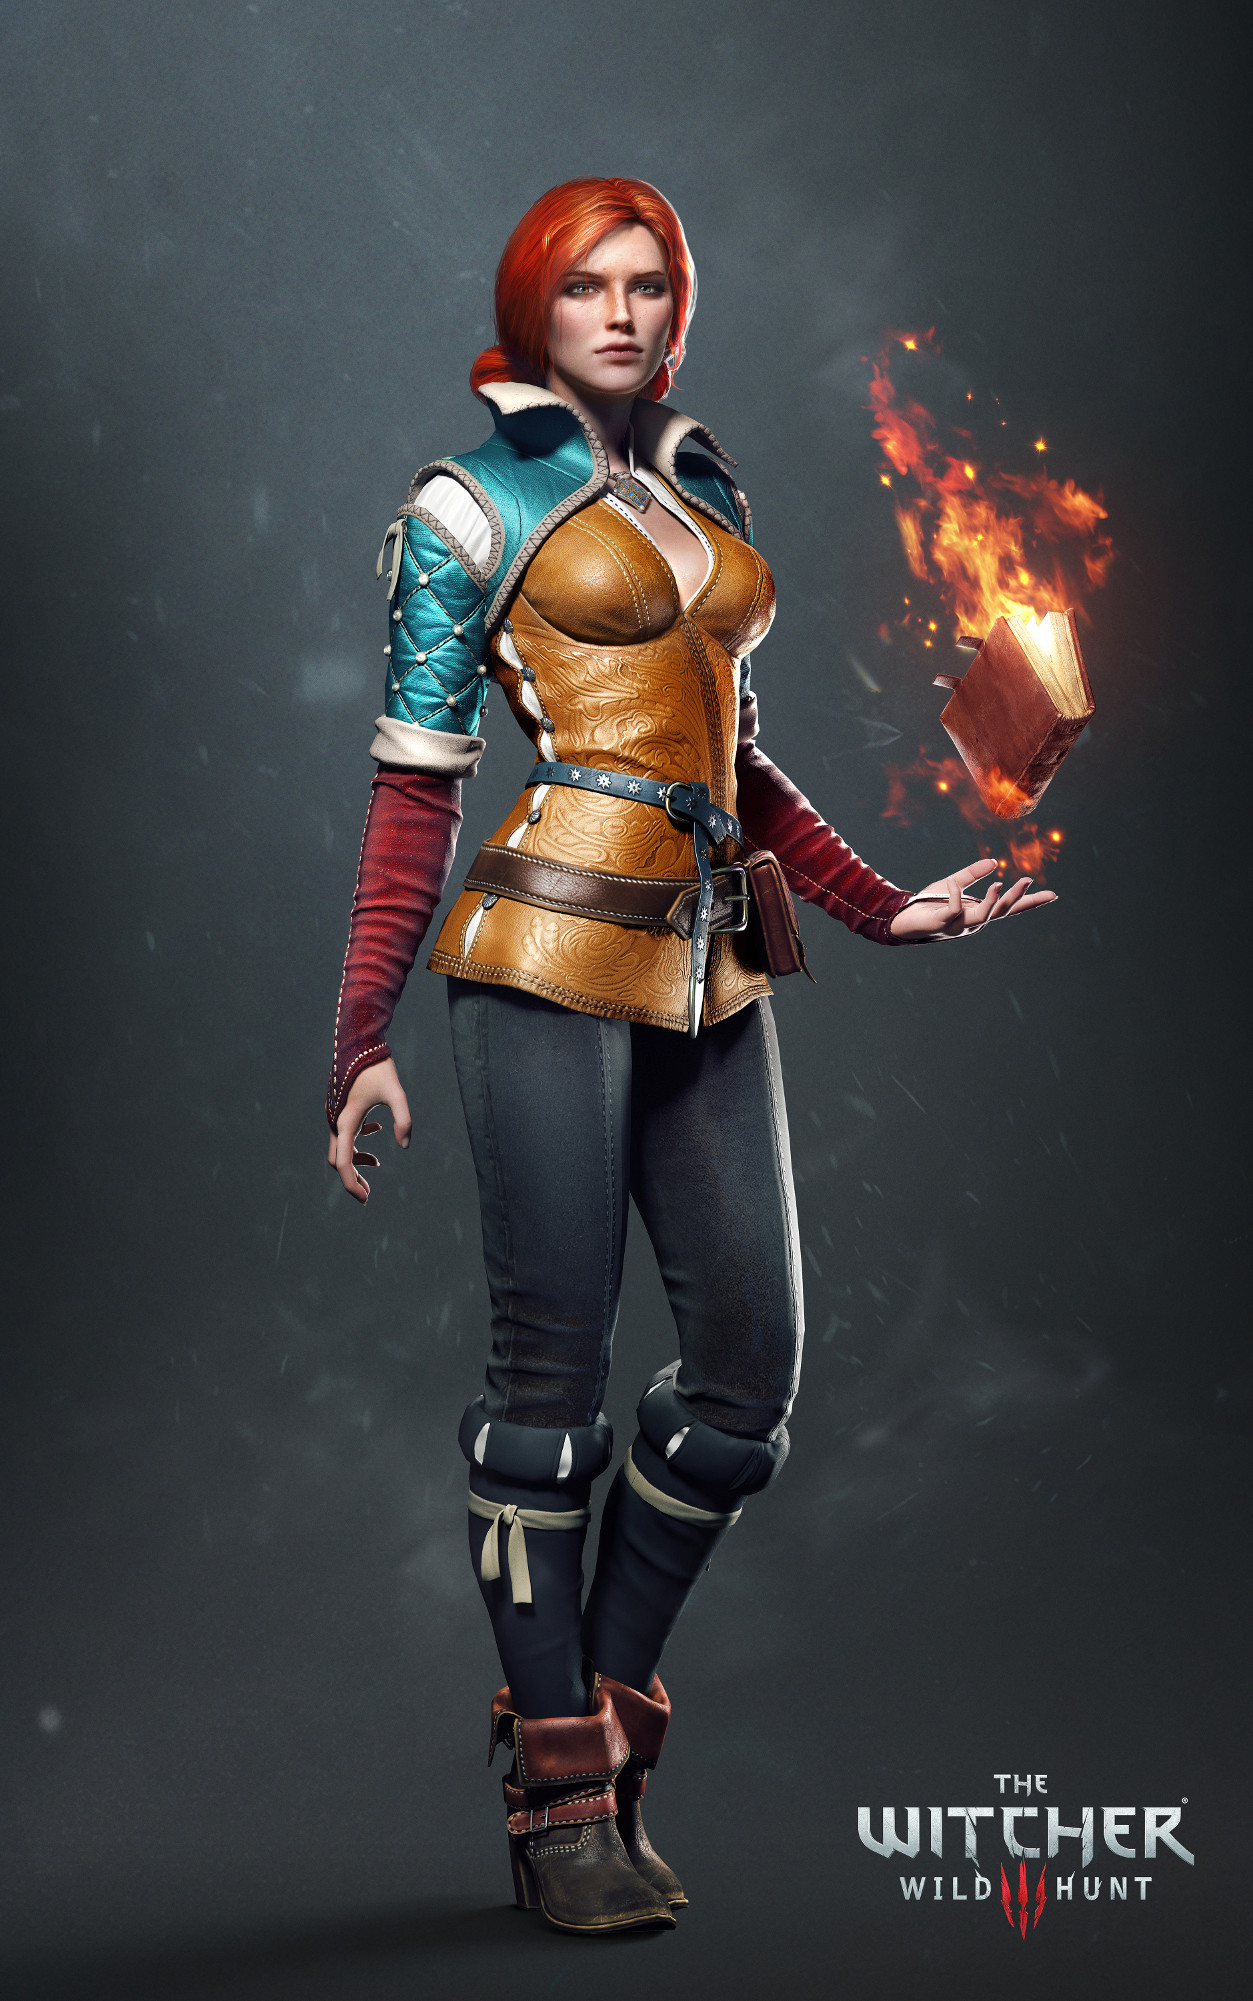 Armor with the nearest resemblance to Triss Merigold's outfit?